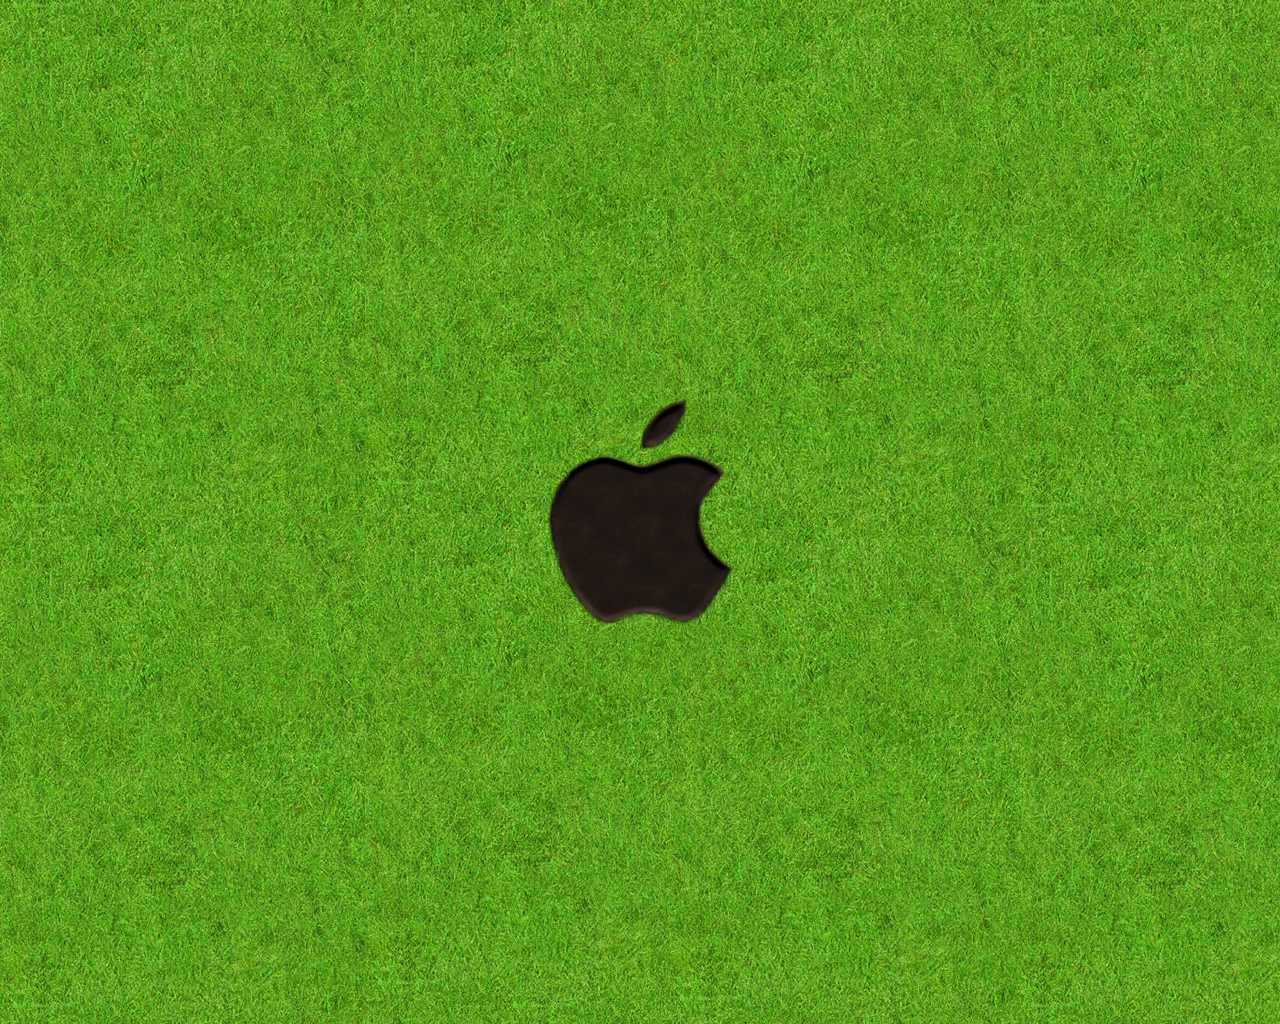 apple grass by lilith187 1280x1024